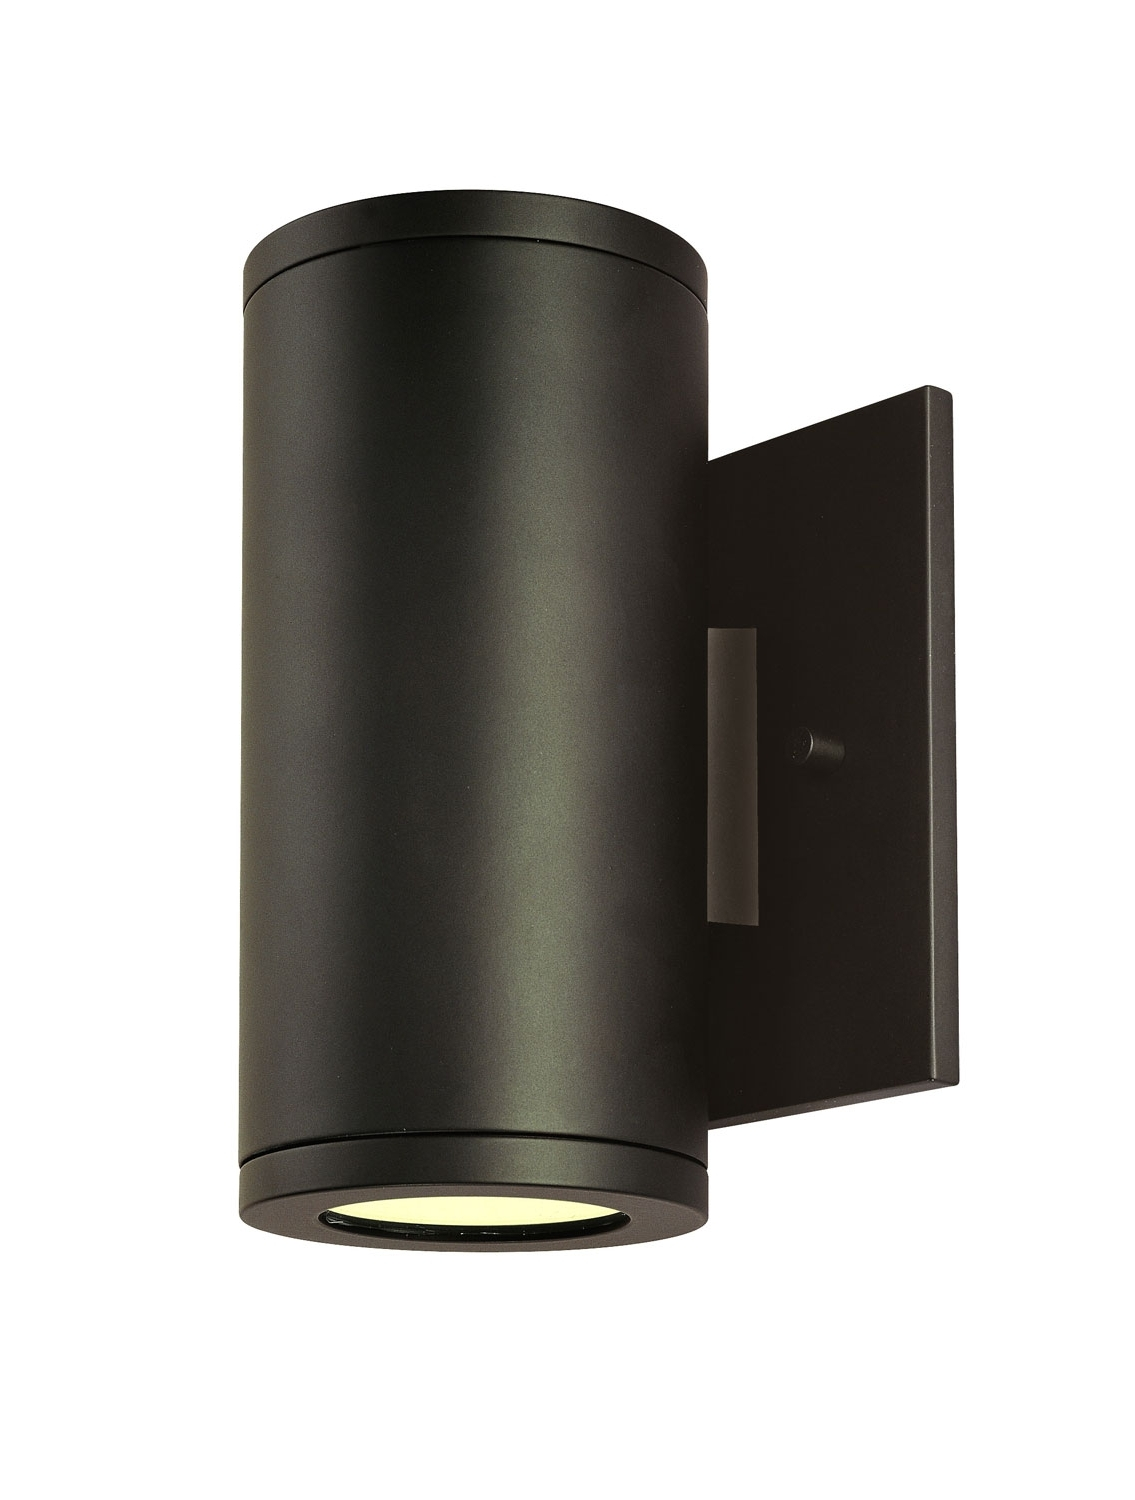 Light : Dark Wall Mounted Outdoor Lighting Black Simple Ideas For Well Known Outdoor Wall Hung Lights (View 3 of 20)